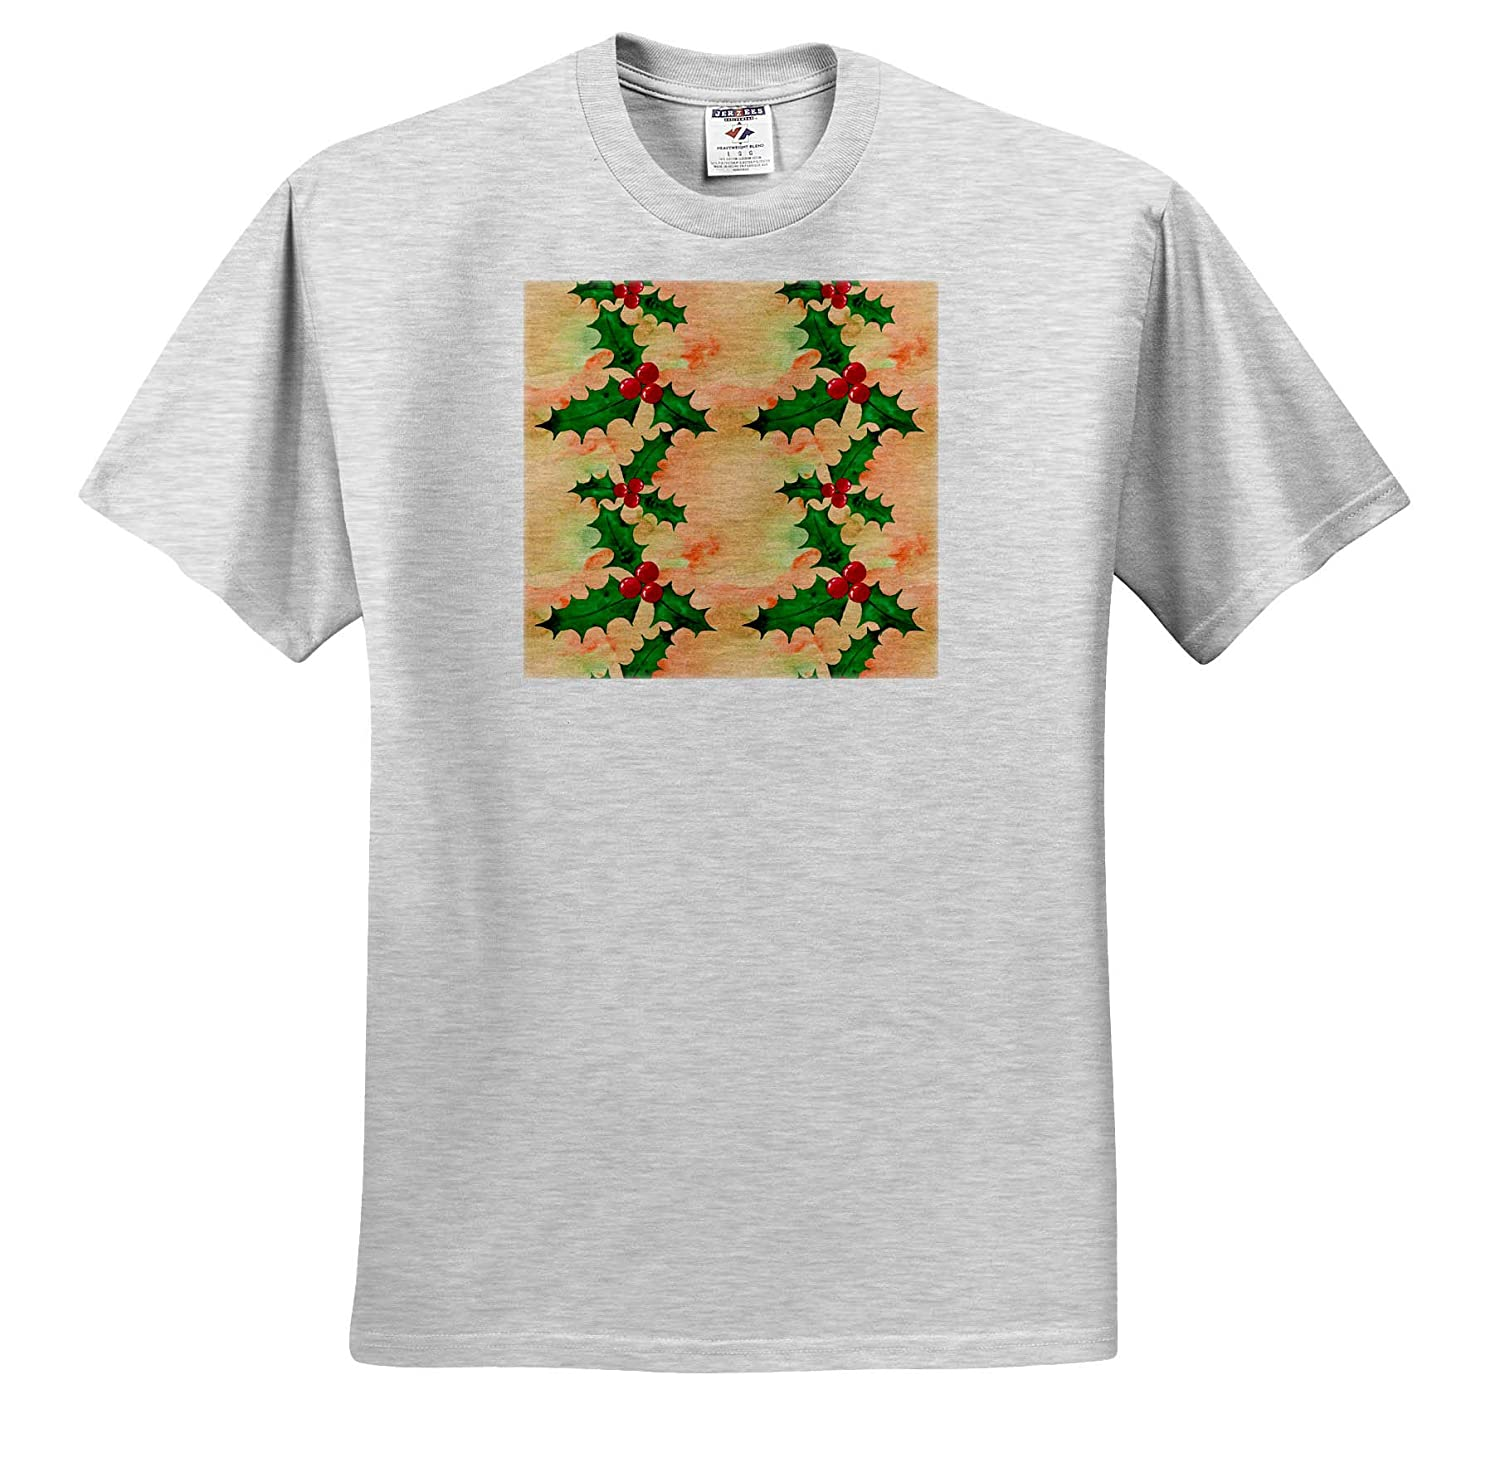 Christmas Cute Image of Watercolor Holly Berry Pattern 3dRose Anne Marie Baugh ts/_318535 Adult T-Shirt XL